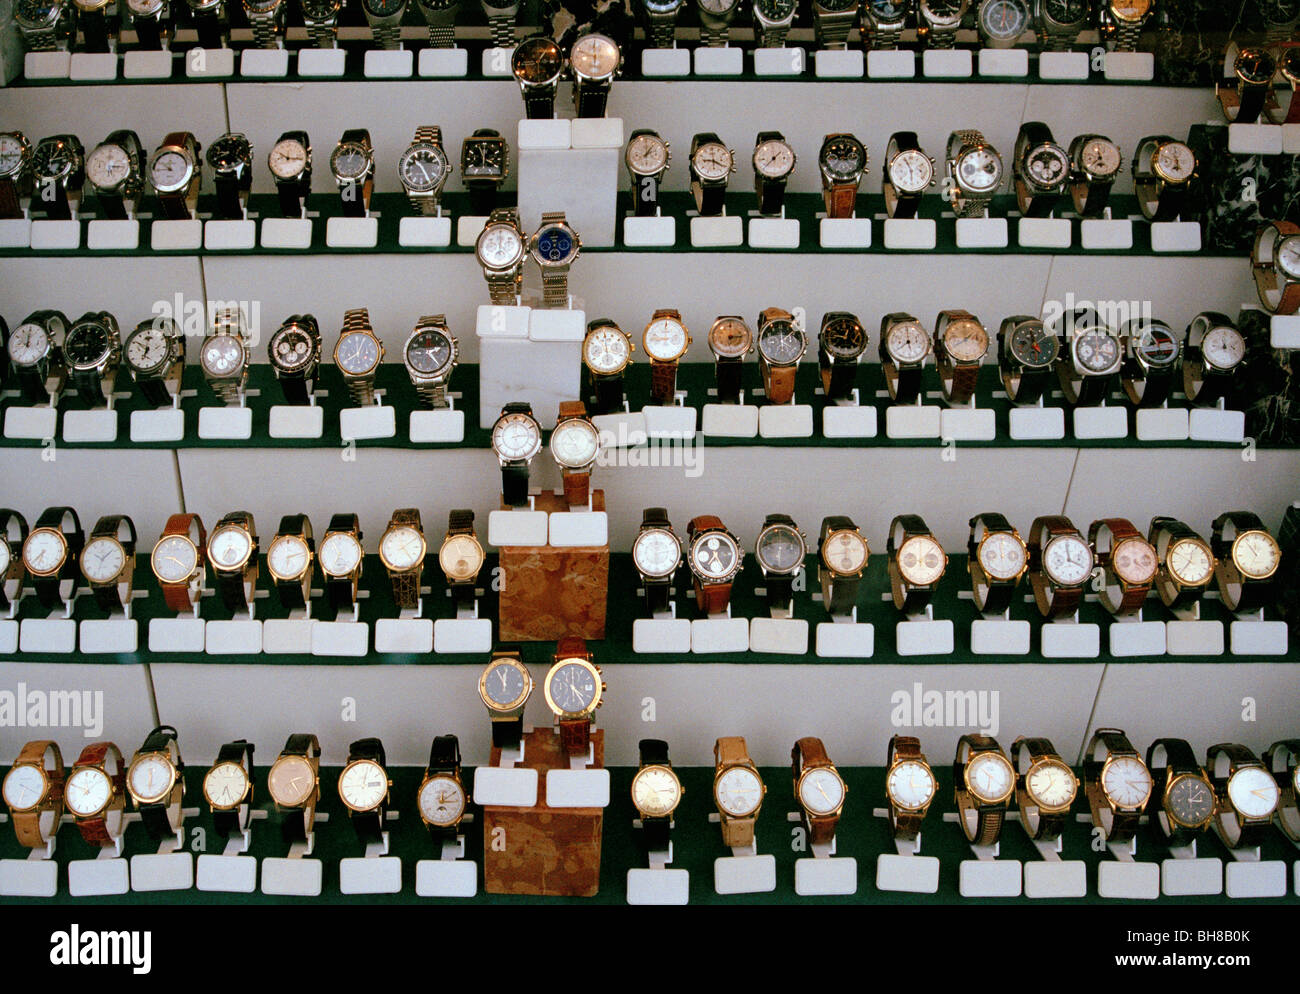 Watches on display - Stock Image